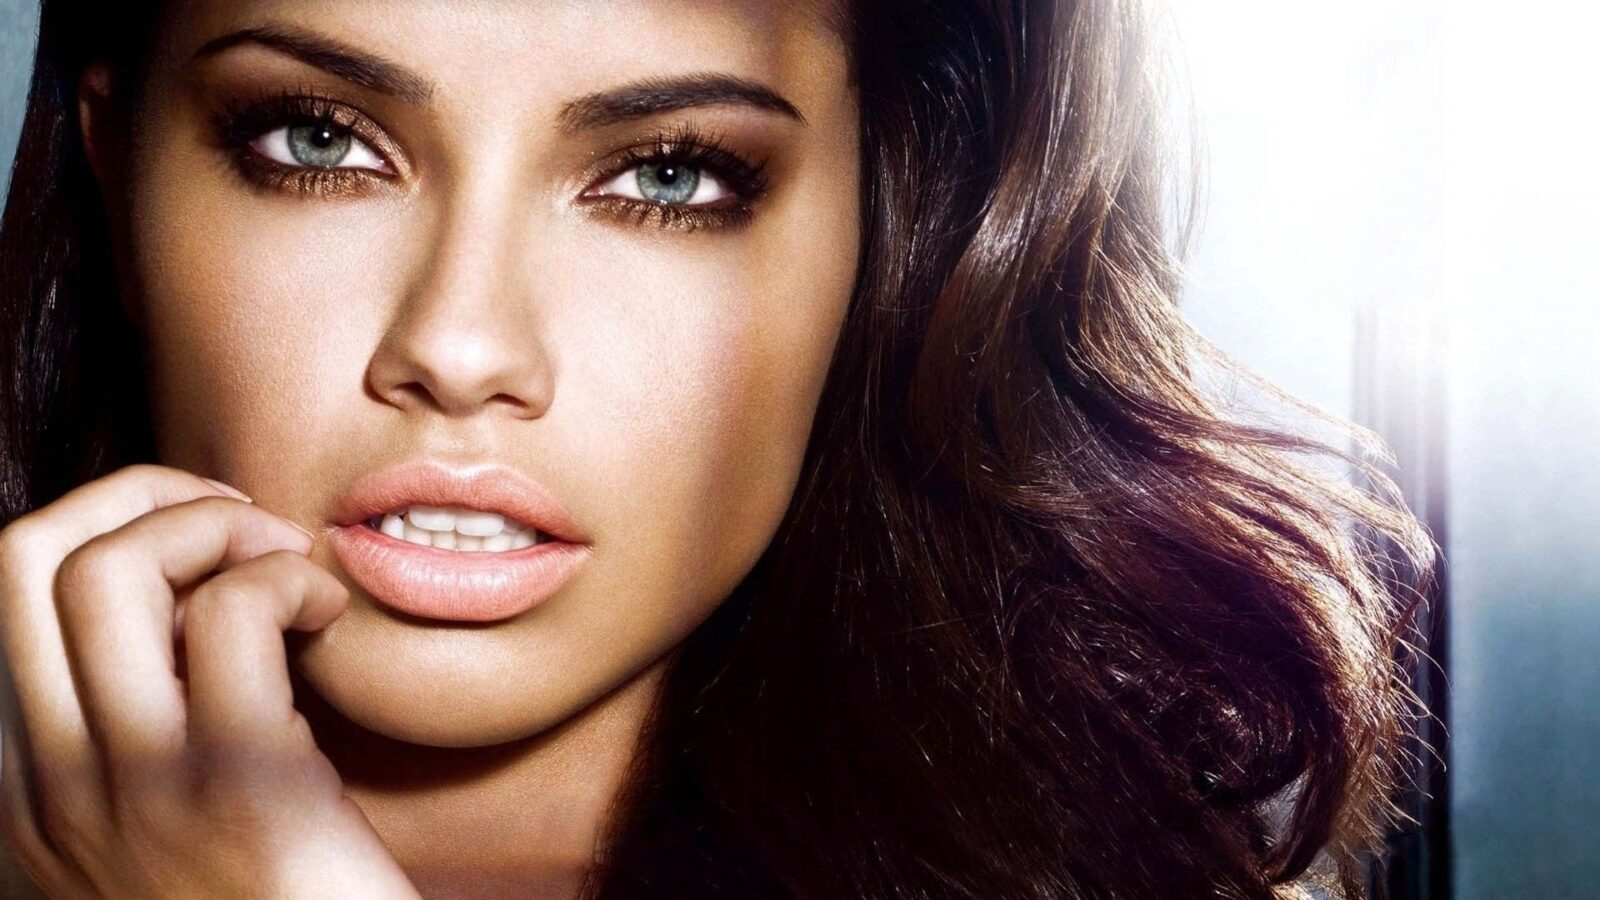 Image of Adriana Lima face